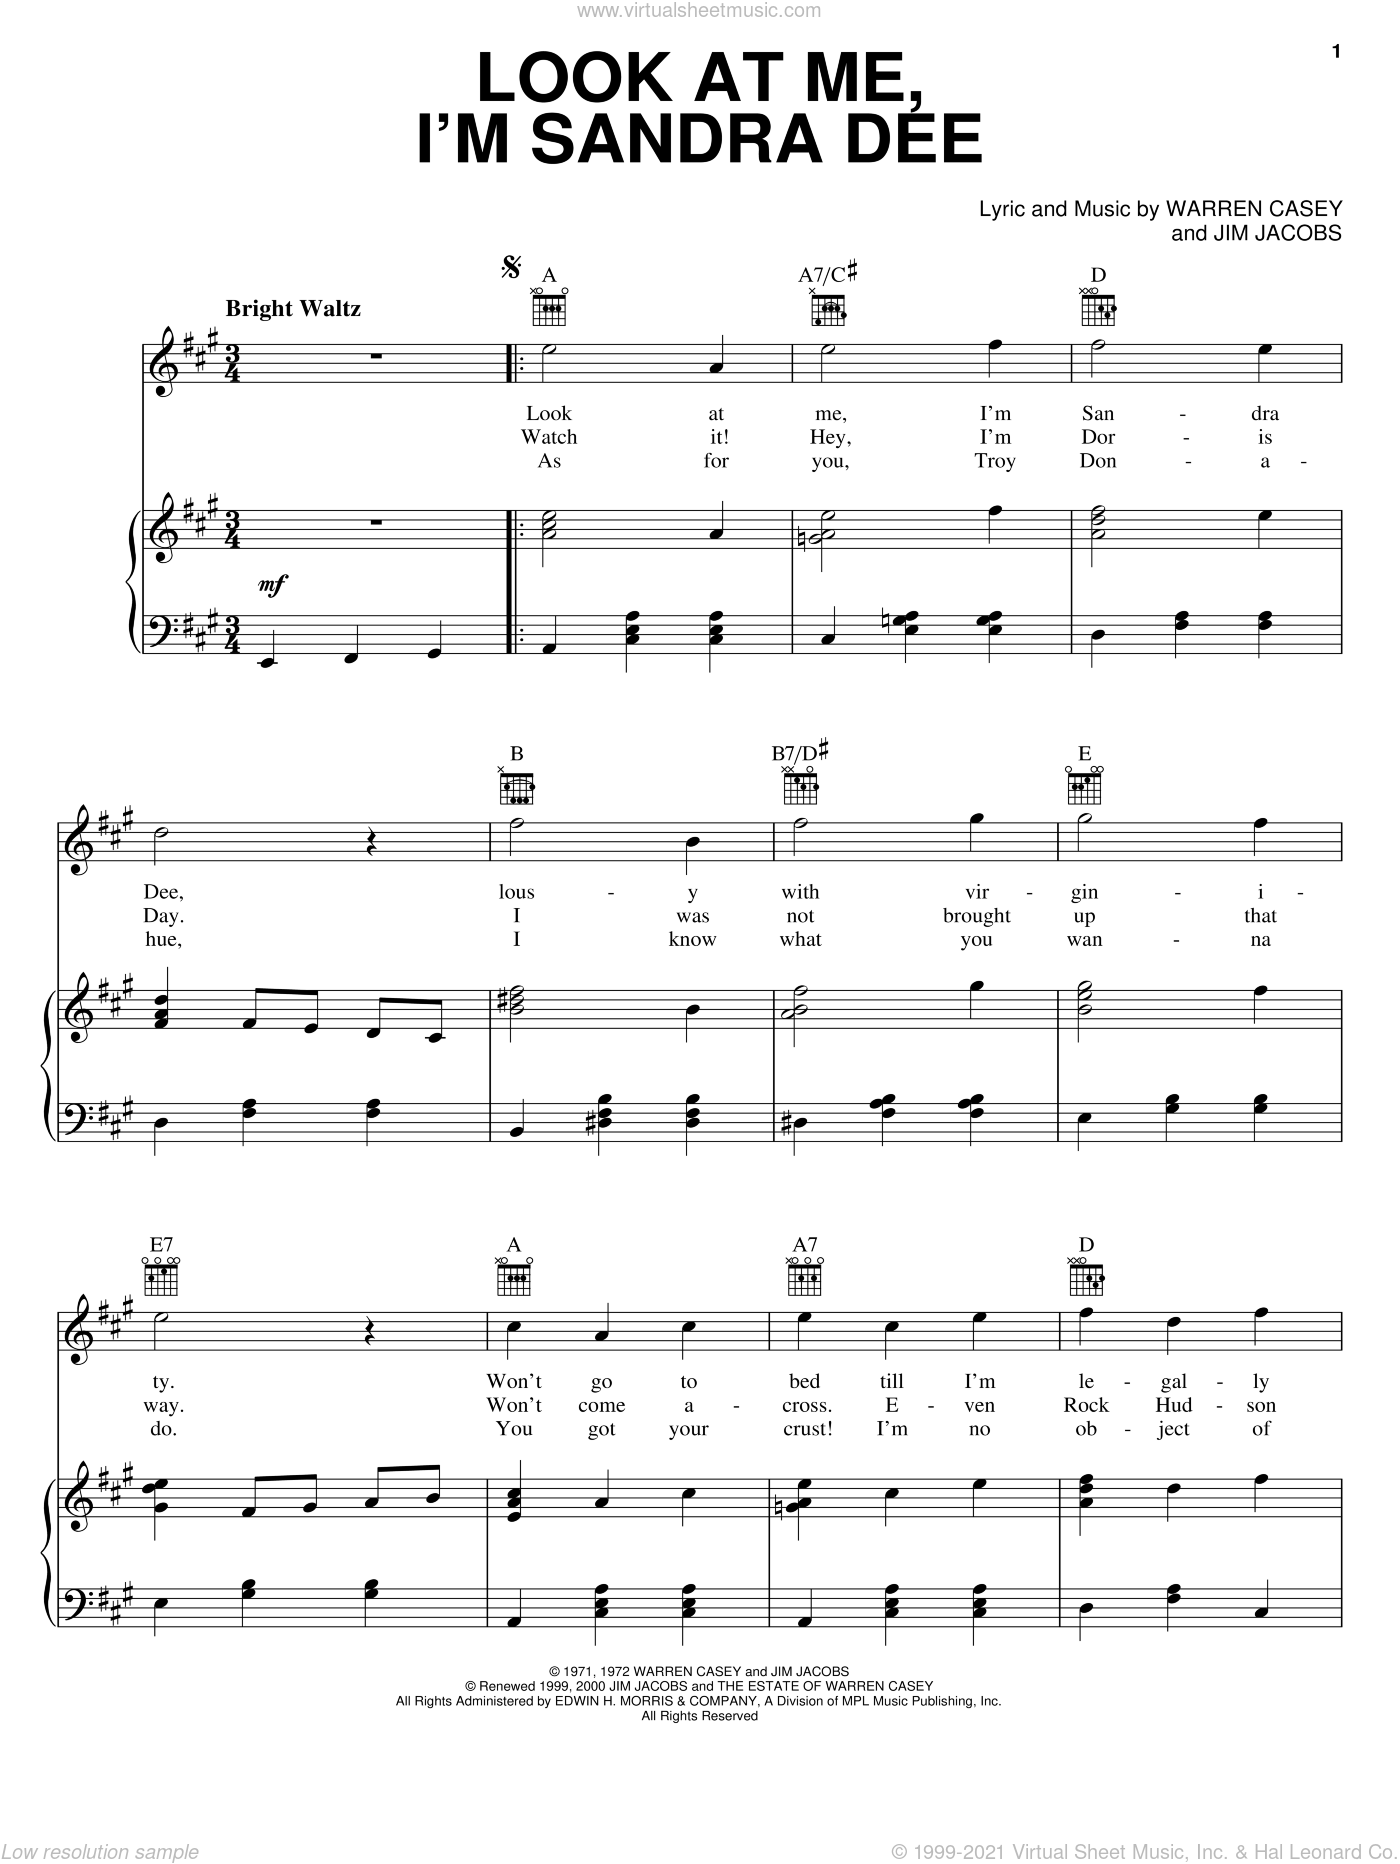 Look At Me, I'm Sandra Dee (from Grease) sheet music for voice, piano or guitar by Stockard Channing, Grease (Musical), Jim Jacobs and Warren Casey, intermediate skill level